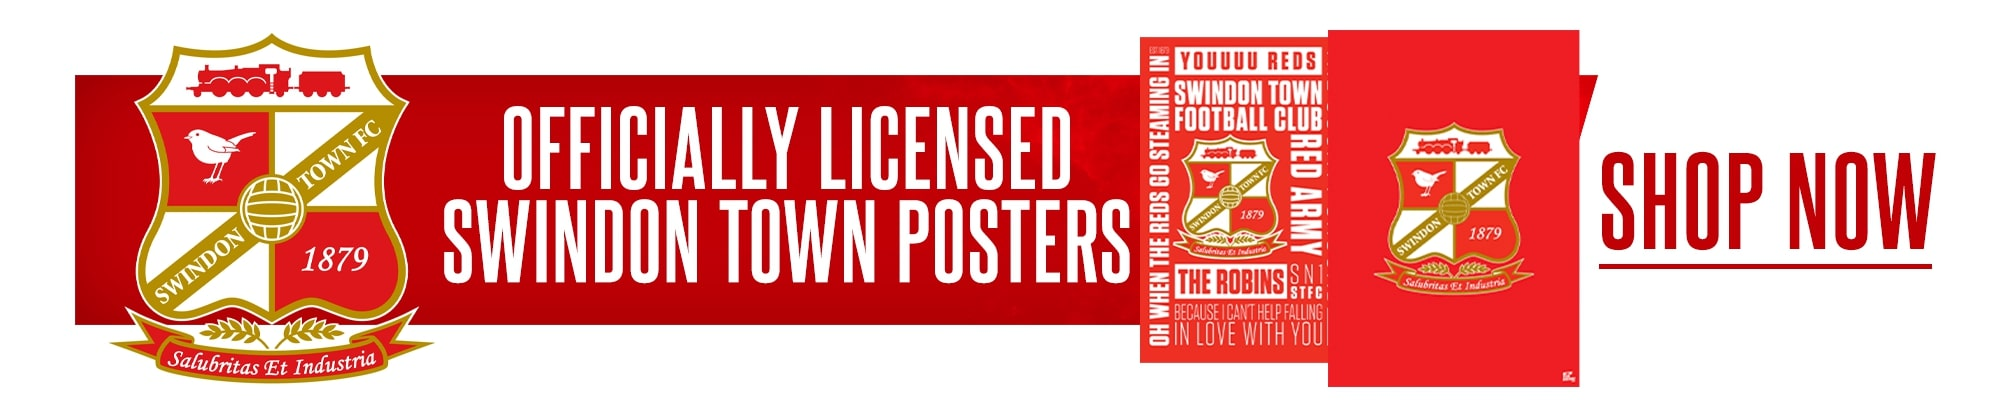 Official Swindon Town Posters